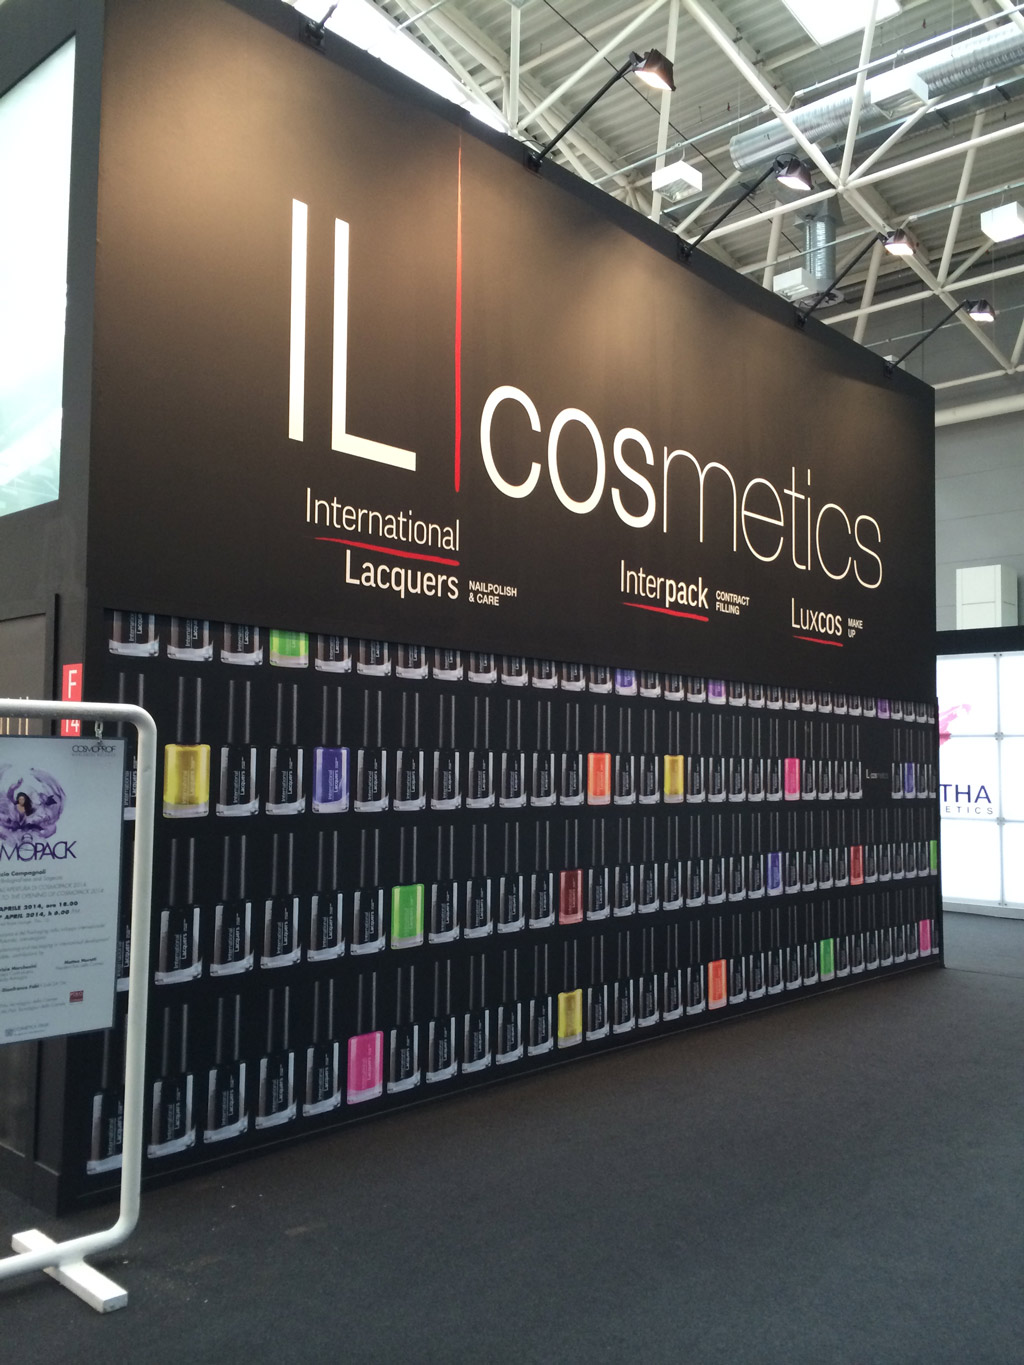 Bologne 2014 Il Cosmetics International Lacquers Luxcos Interpack